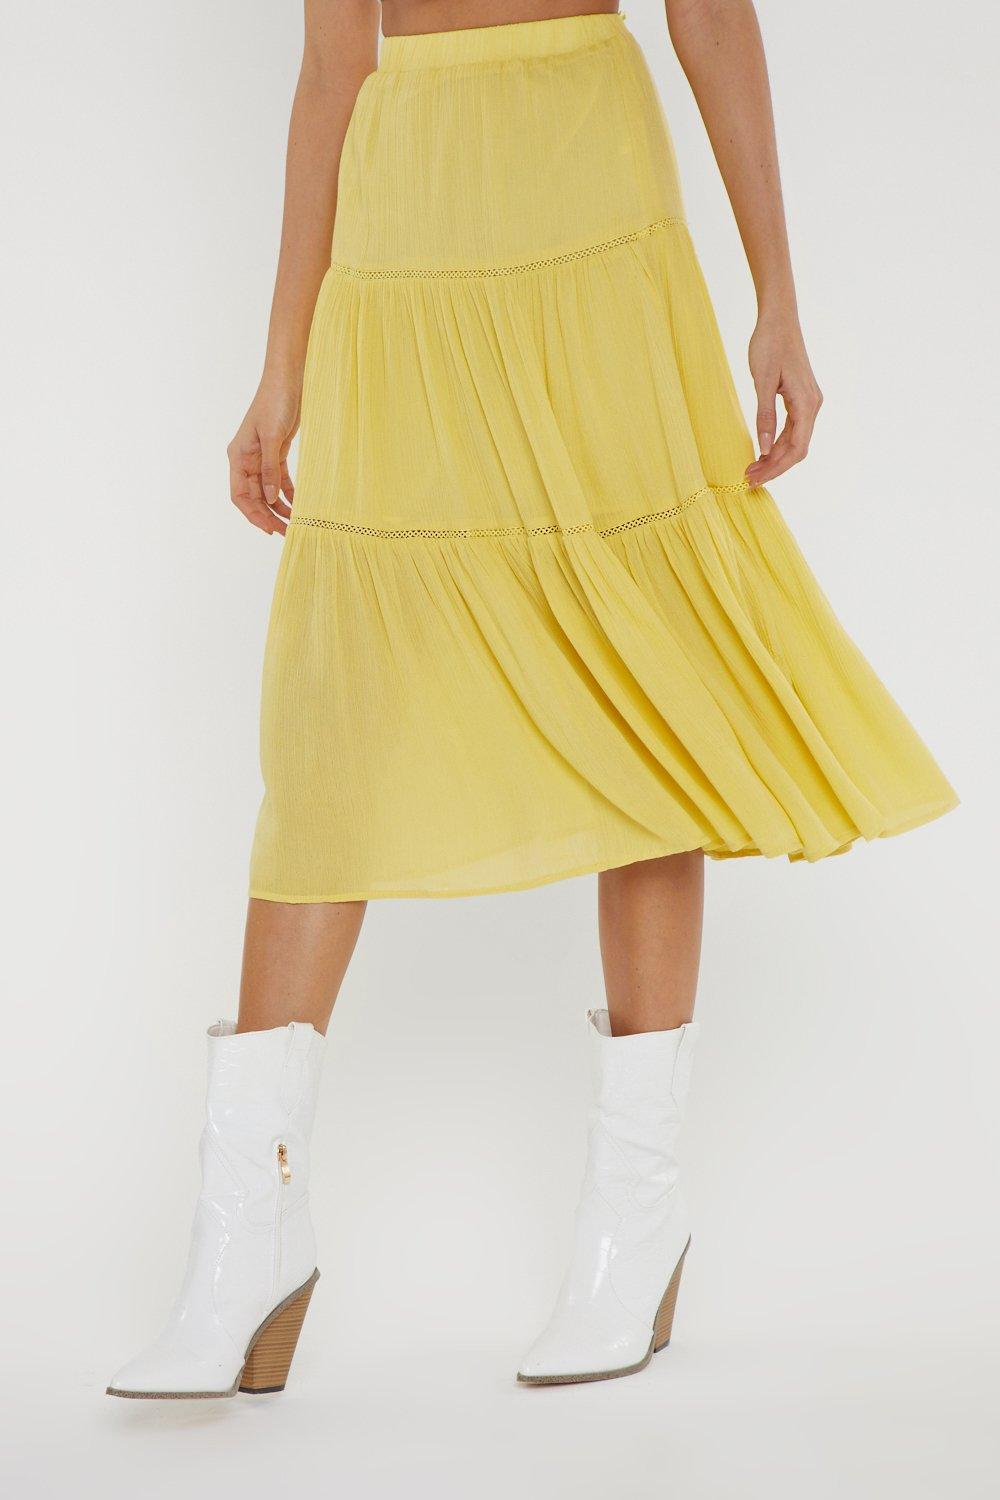 b302461f7f Tier We Go High-Waisted Midi Skirt | Shop Clothes at Nasty Gal!